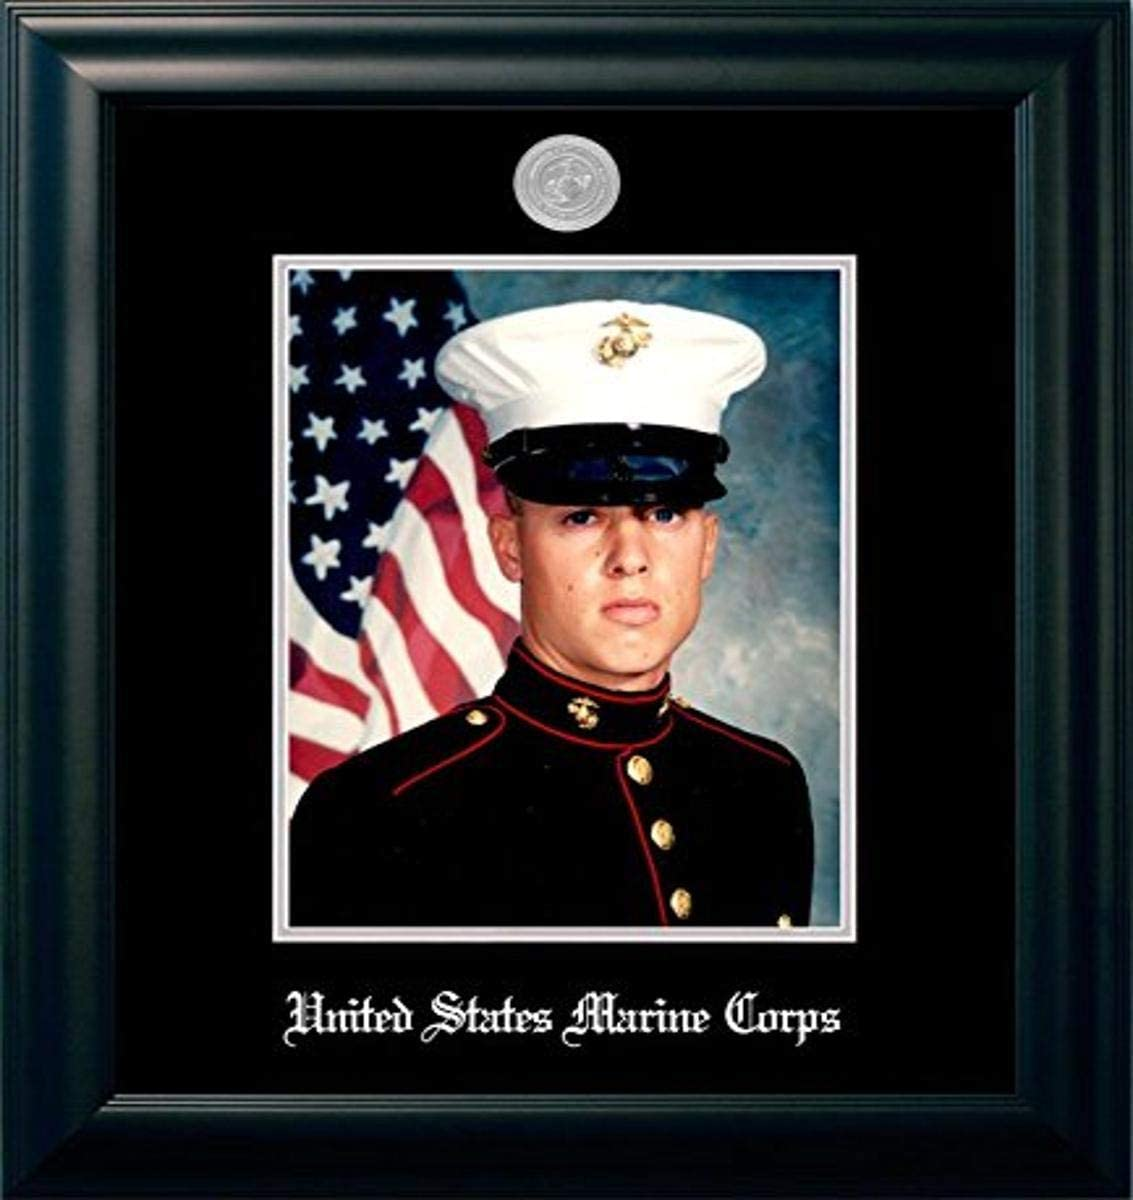 Marine Portrait Frame with Silver Max 88% OFF Medallion National products Inches 8 10 Black x